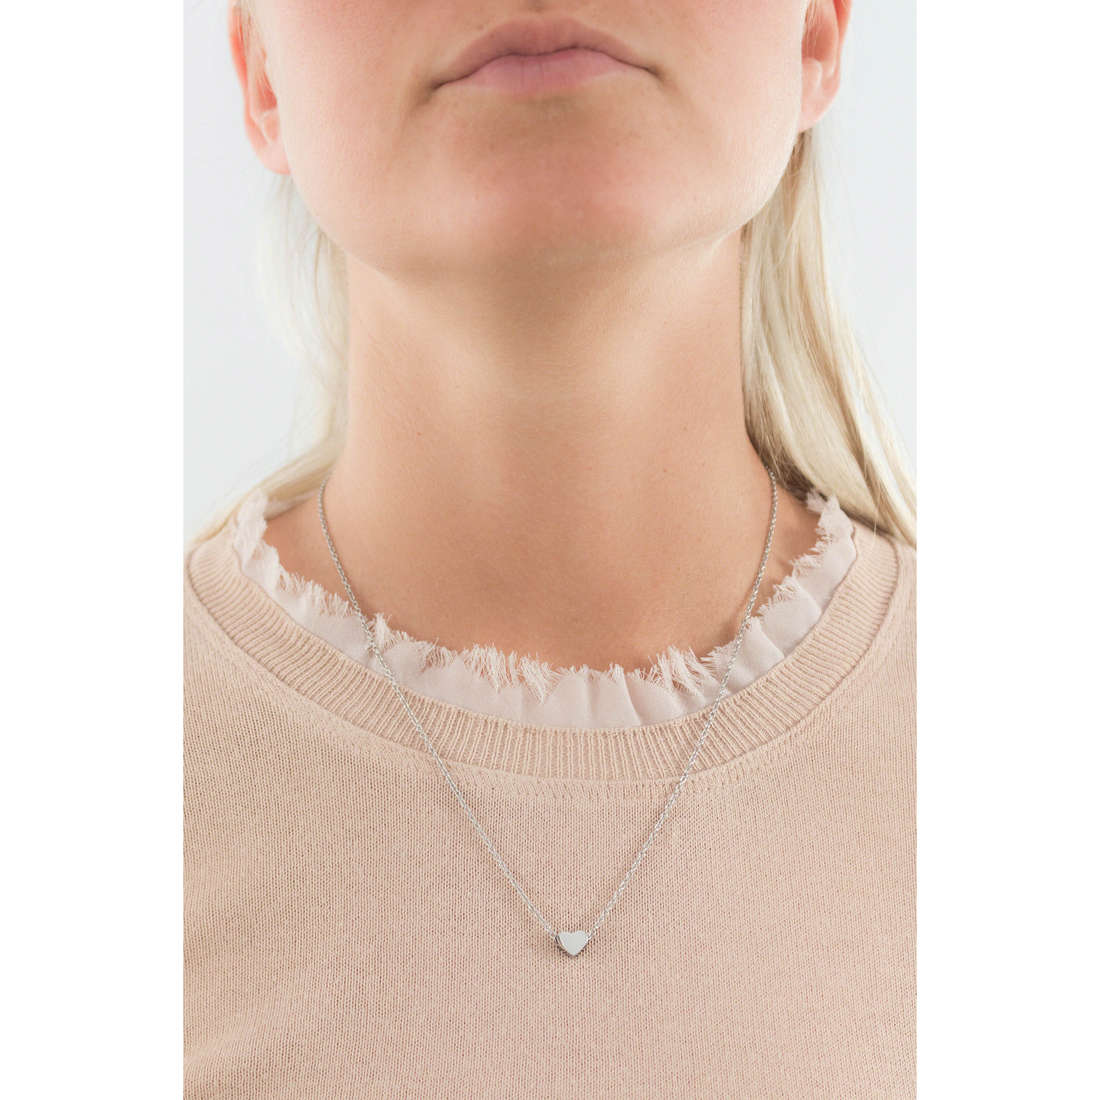 Marlù necklaces My Luck woman 18CN016 indosso